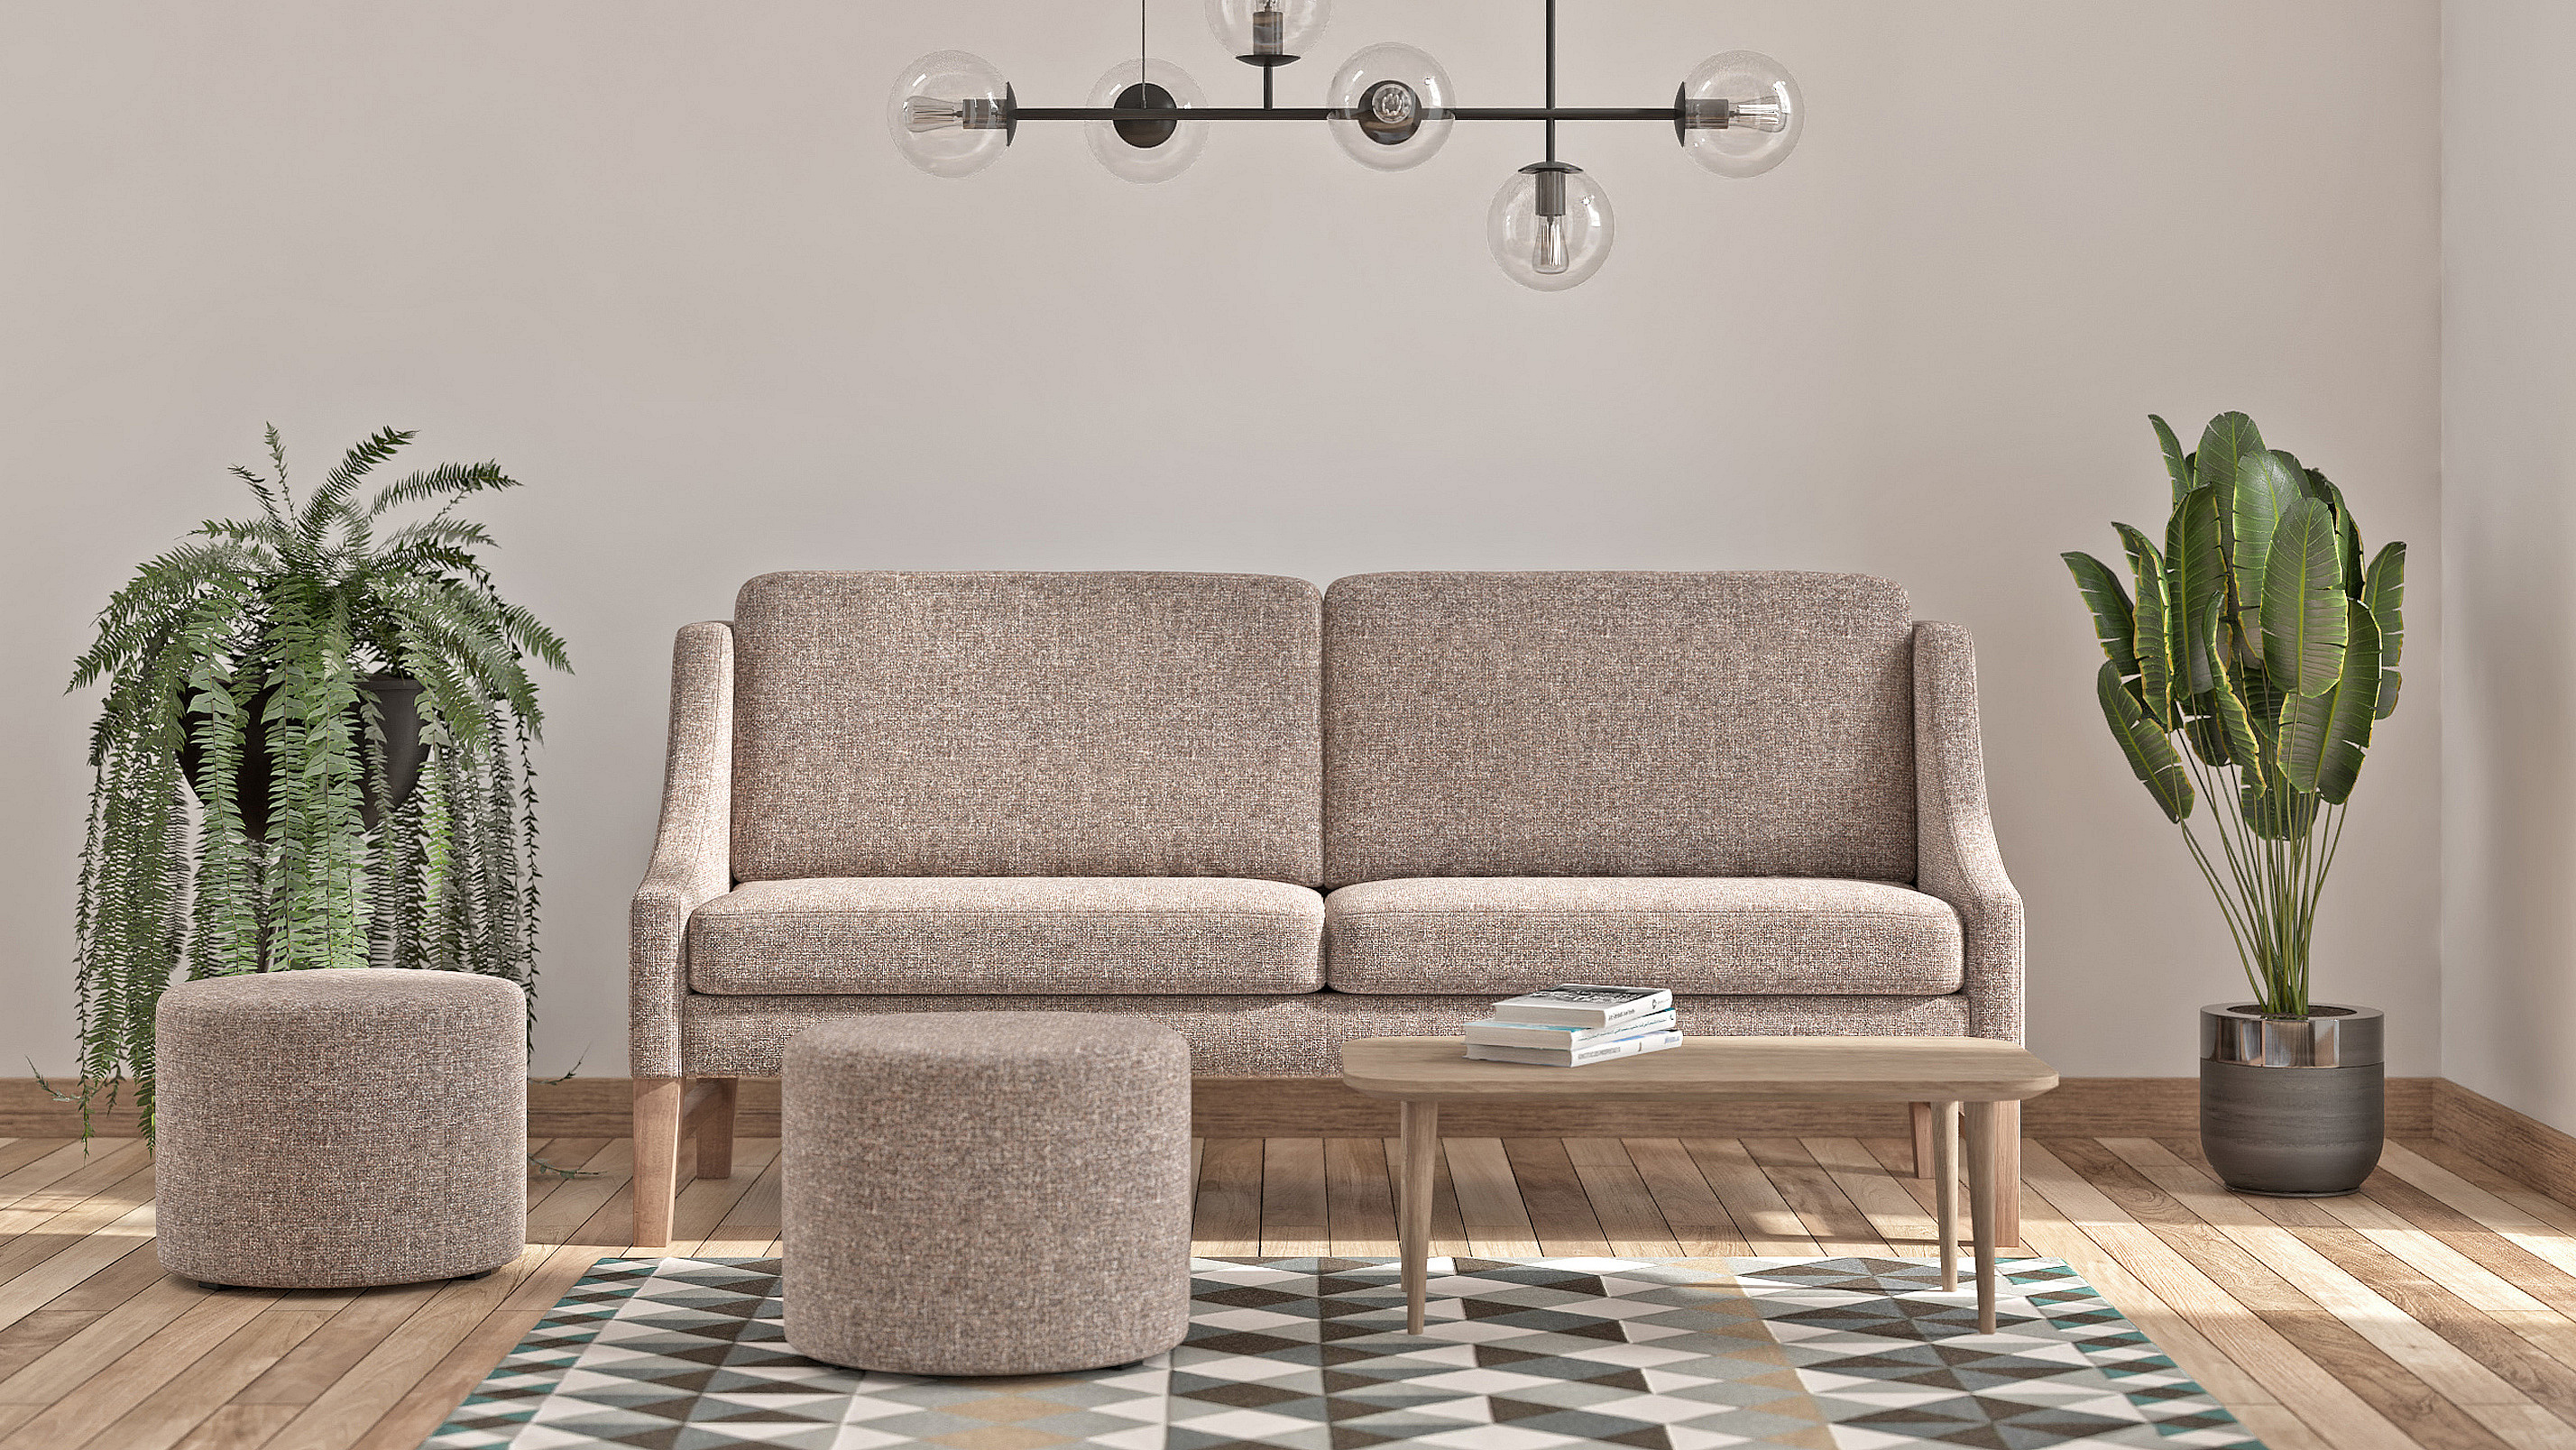 Living room example with the bench called Davos in netural colors.